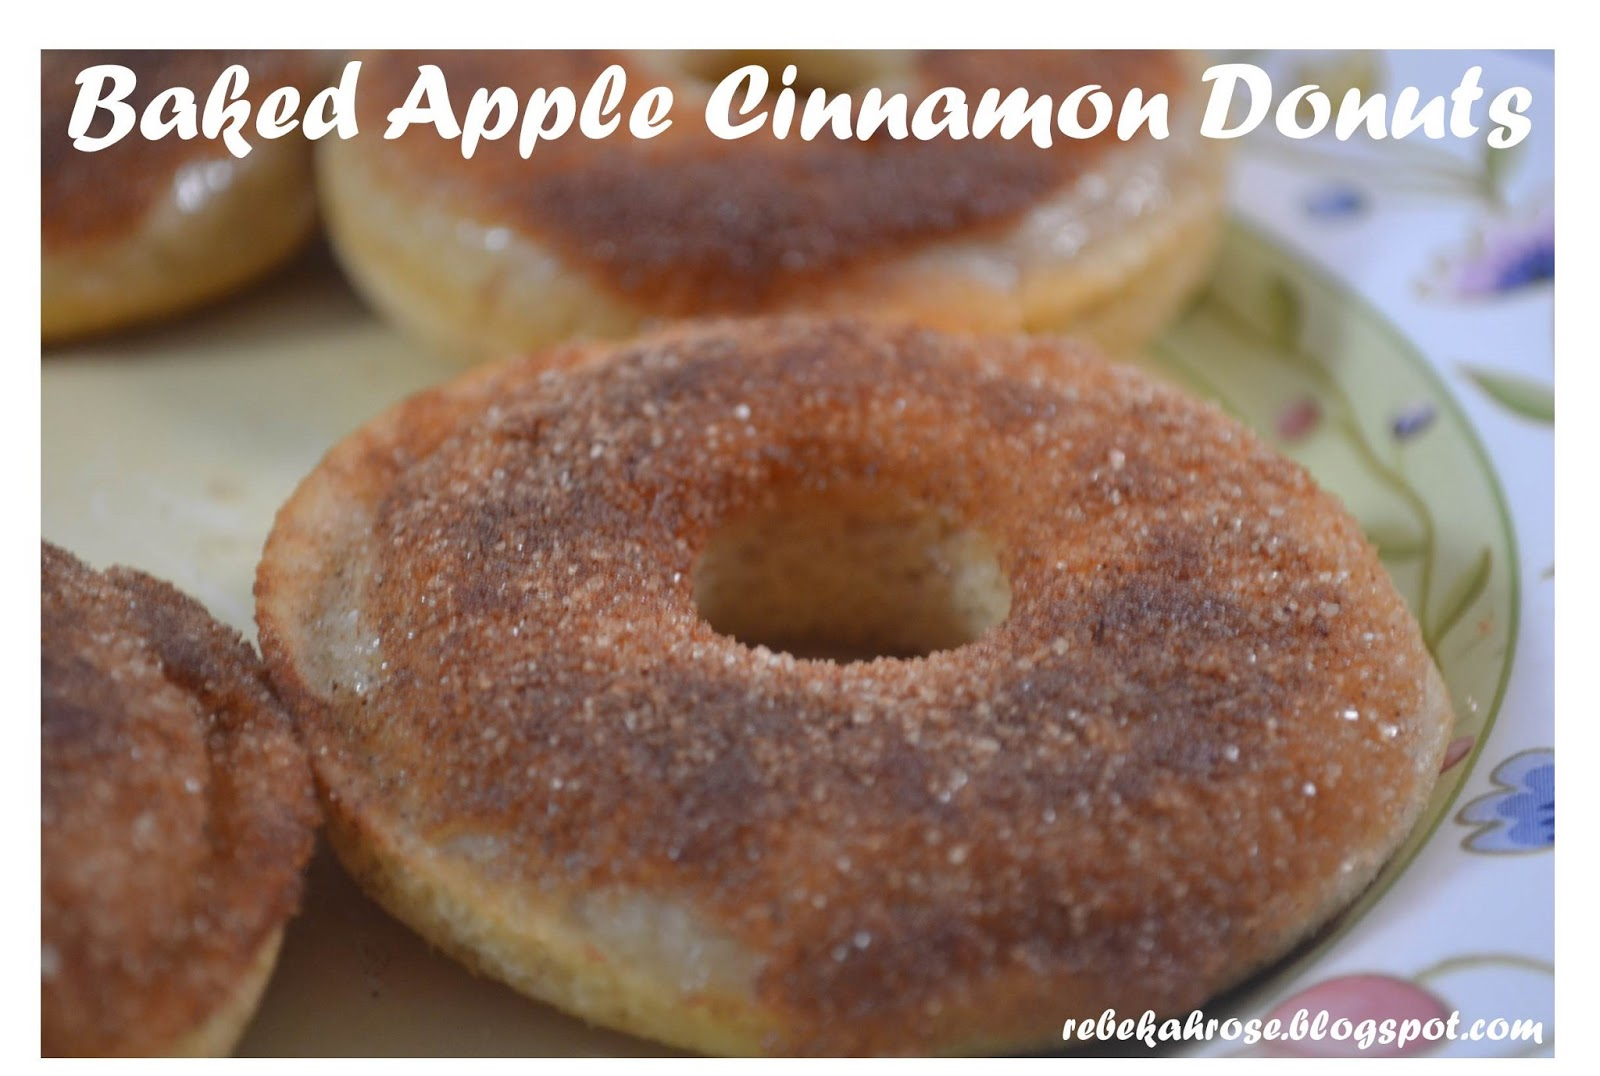 Making Miracles: Baked Apple Cinnamon Donuts